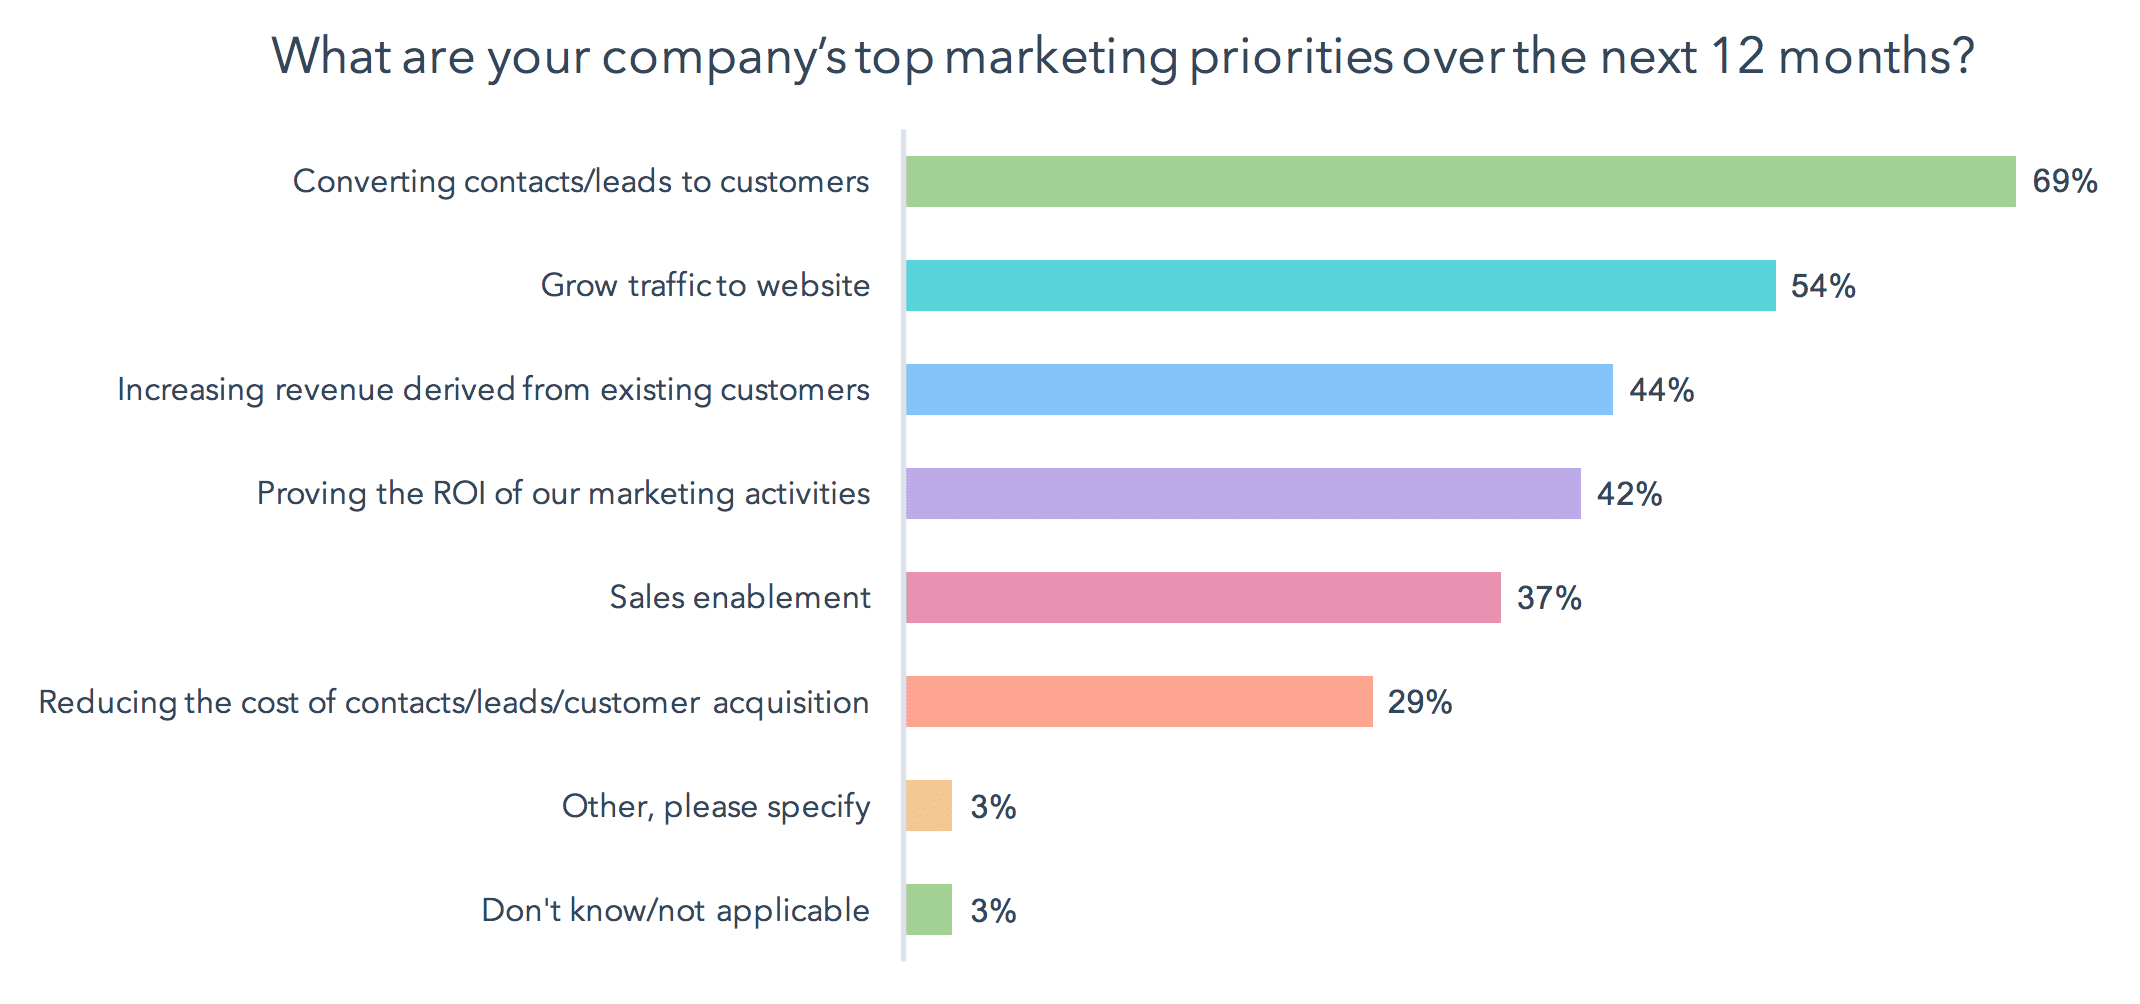 Marketers prioritize converting leads into customers – BOFU content is crucial